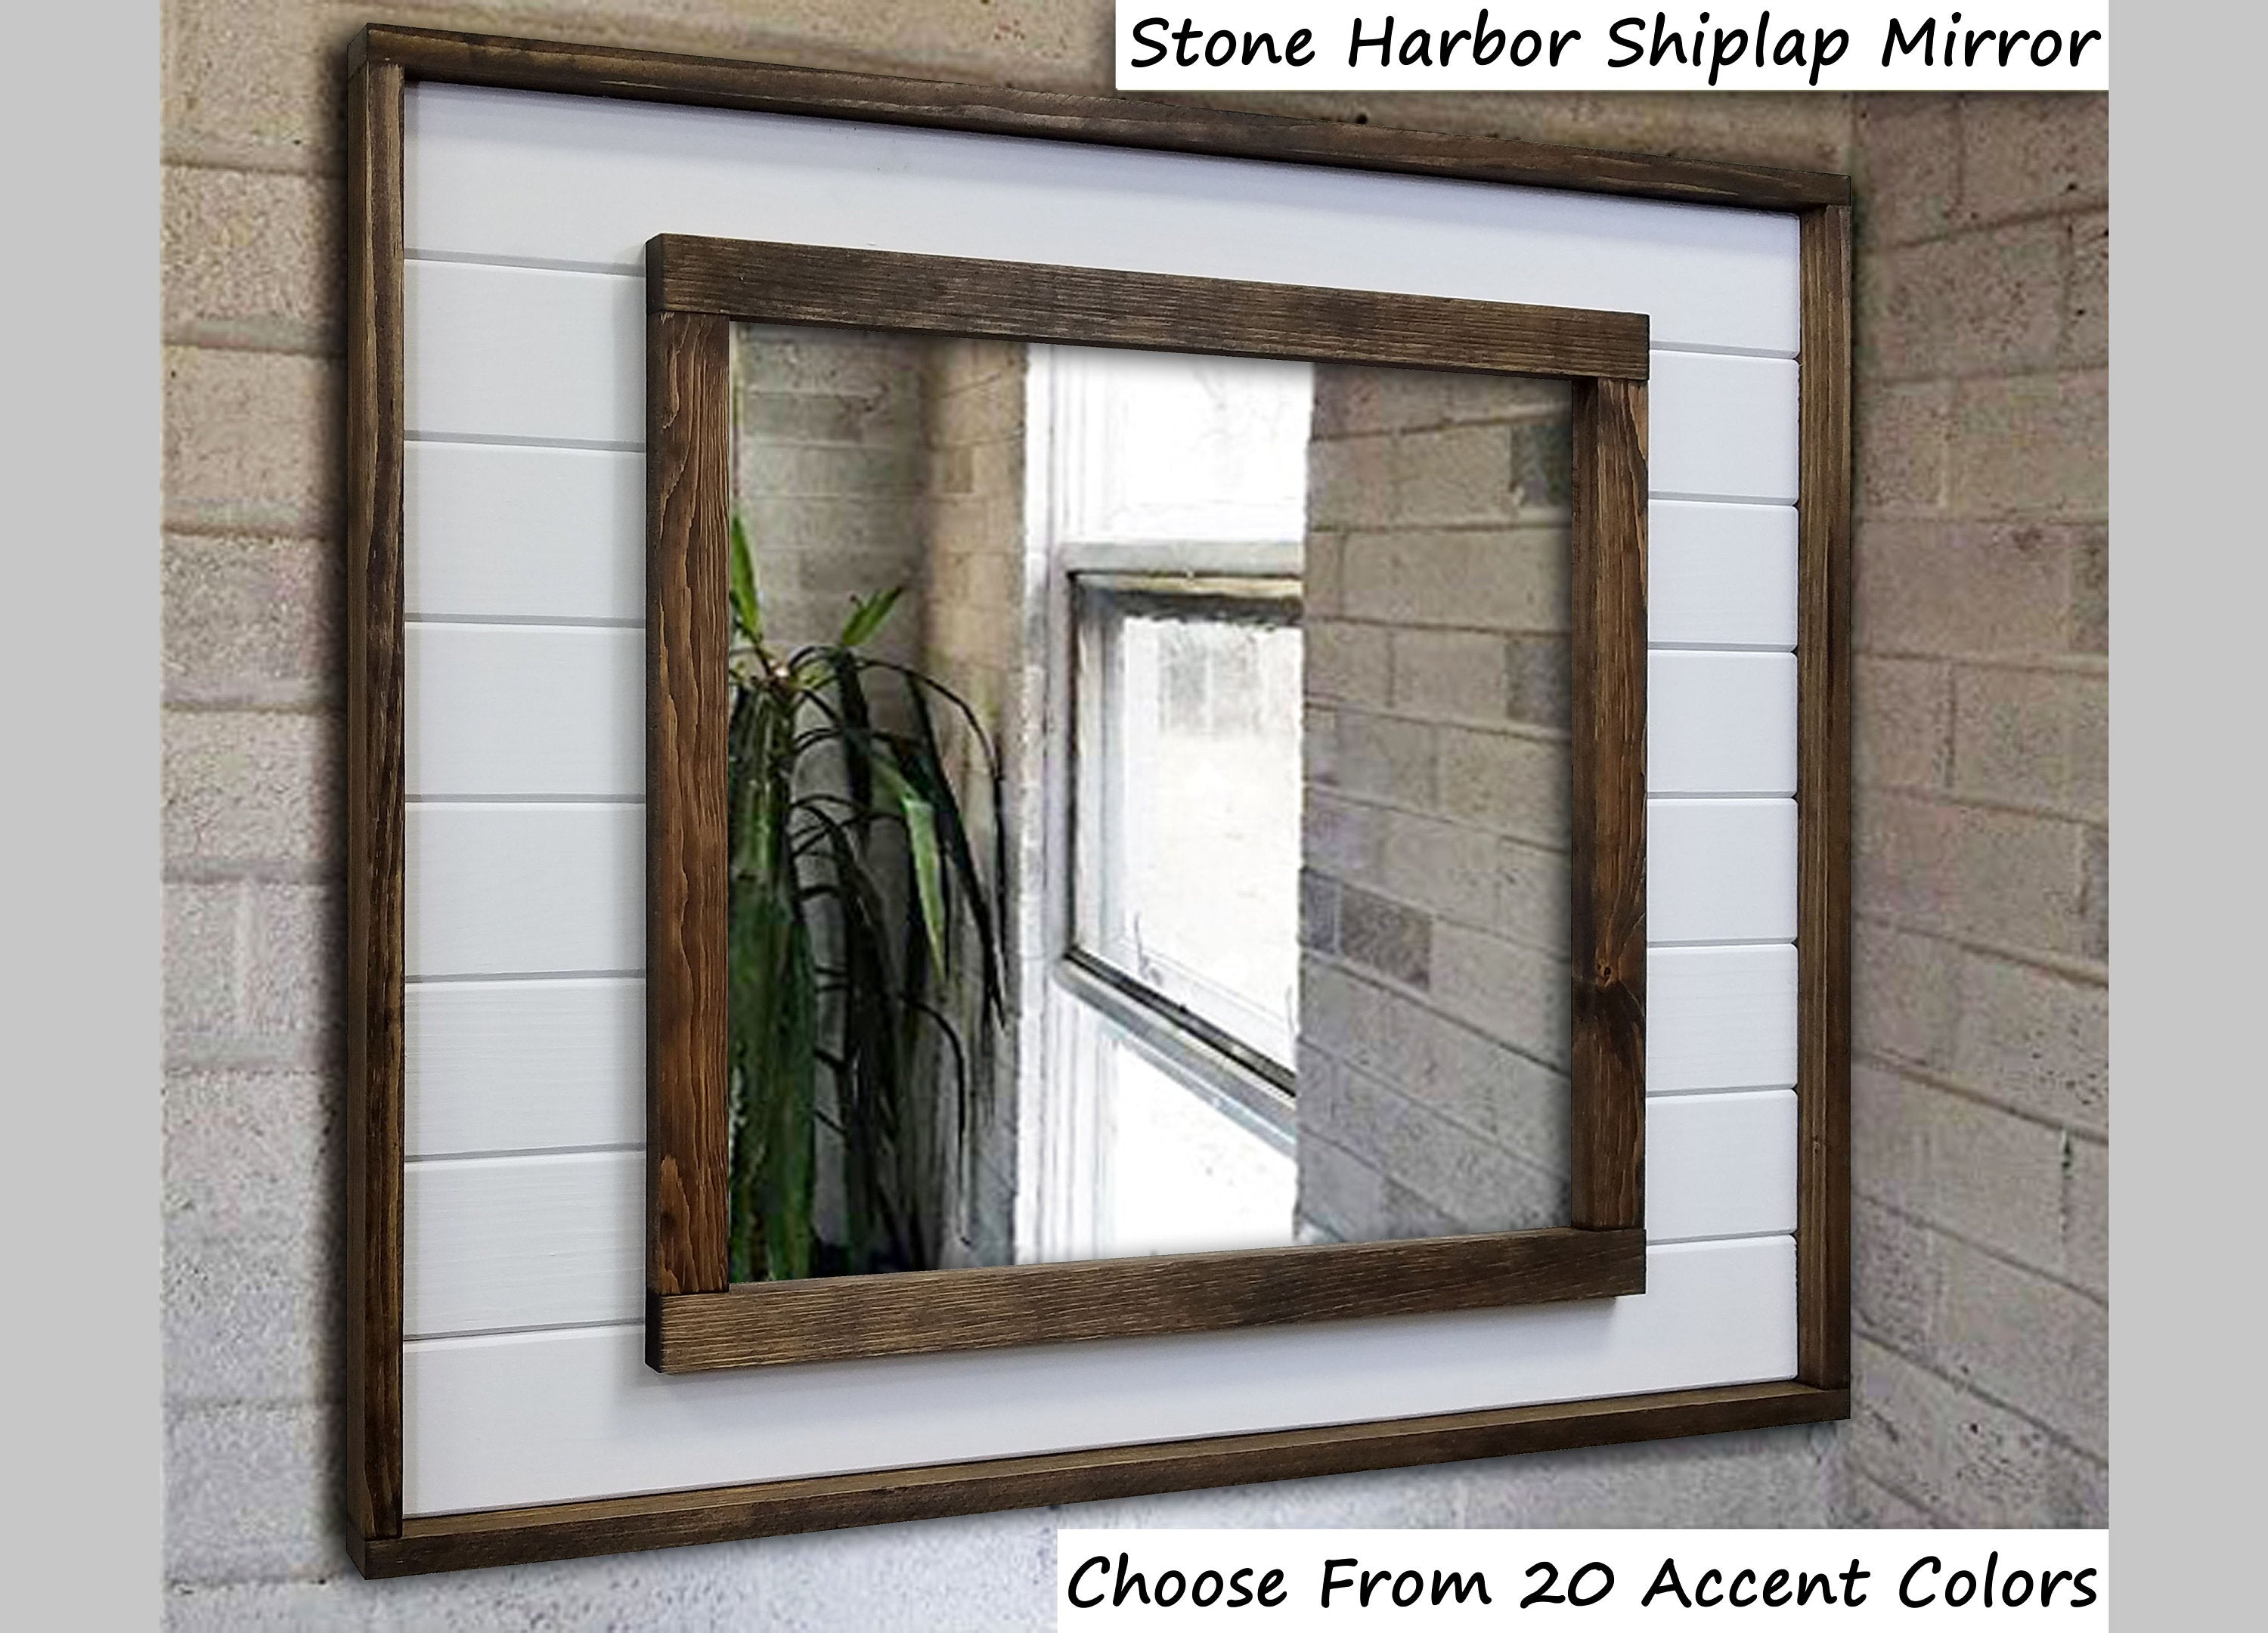 Stone Harbor Shiplap Framed Wall Mirror, Rustic Wall Decor, Mirror Wall Decor, Vanity Mirror, Bathroom Mirror, Rustic Mirror, Shiplap Boards - Renewed Decor & Storage